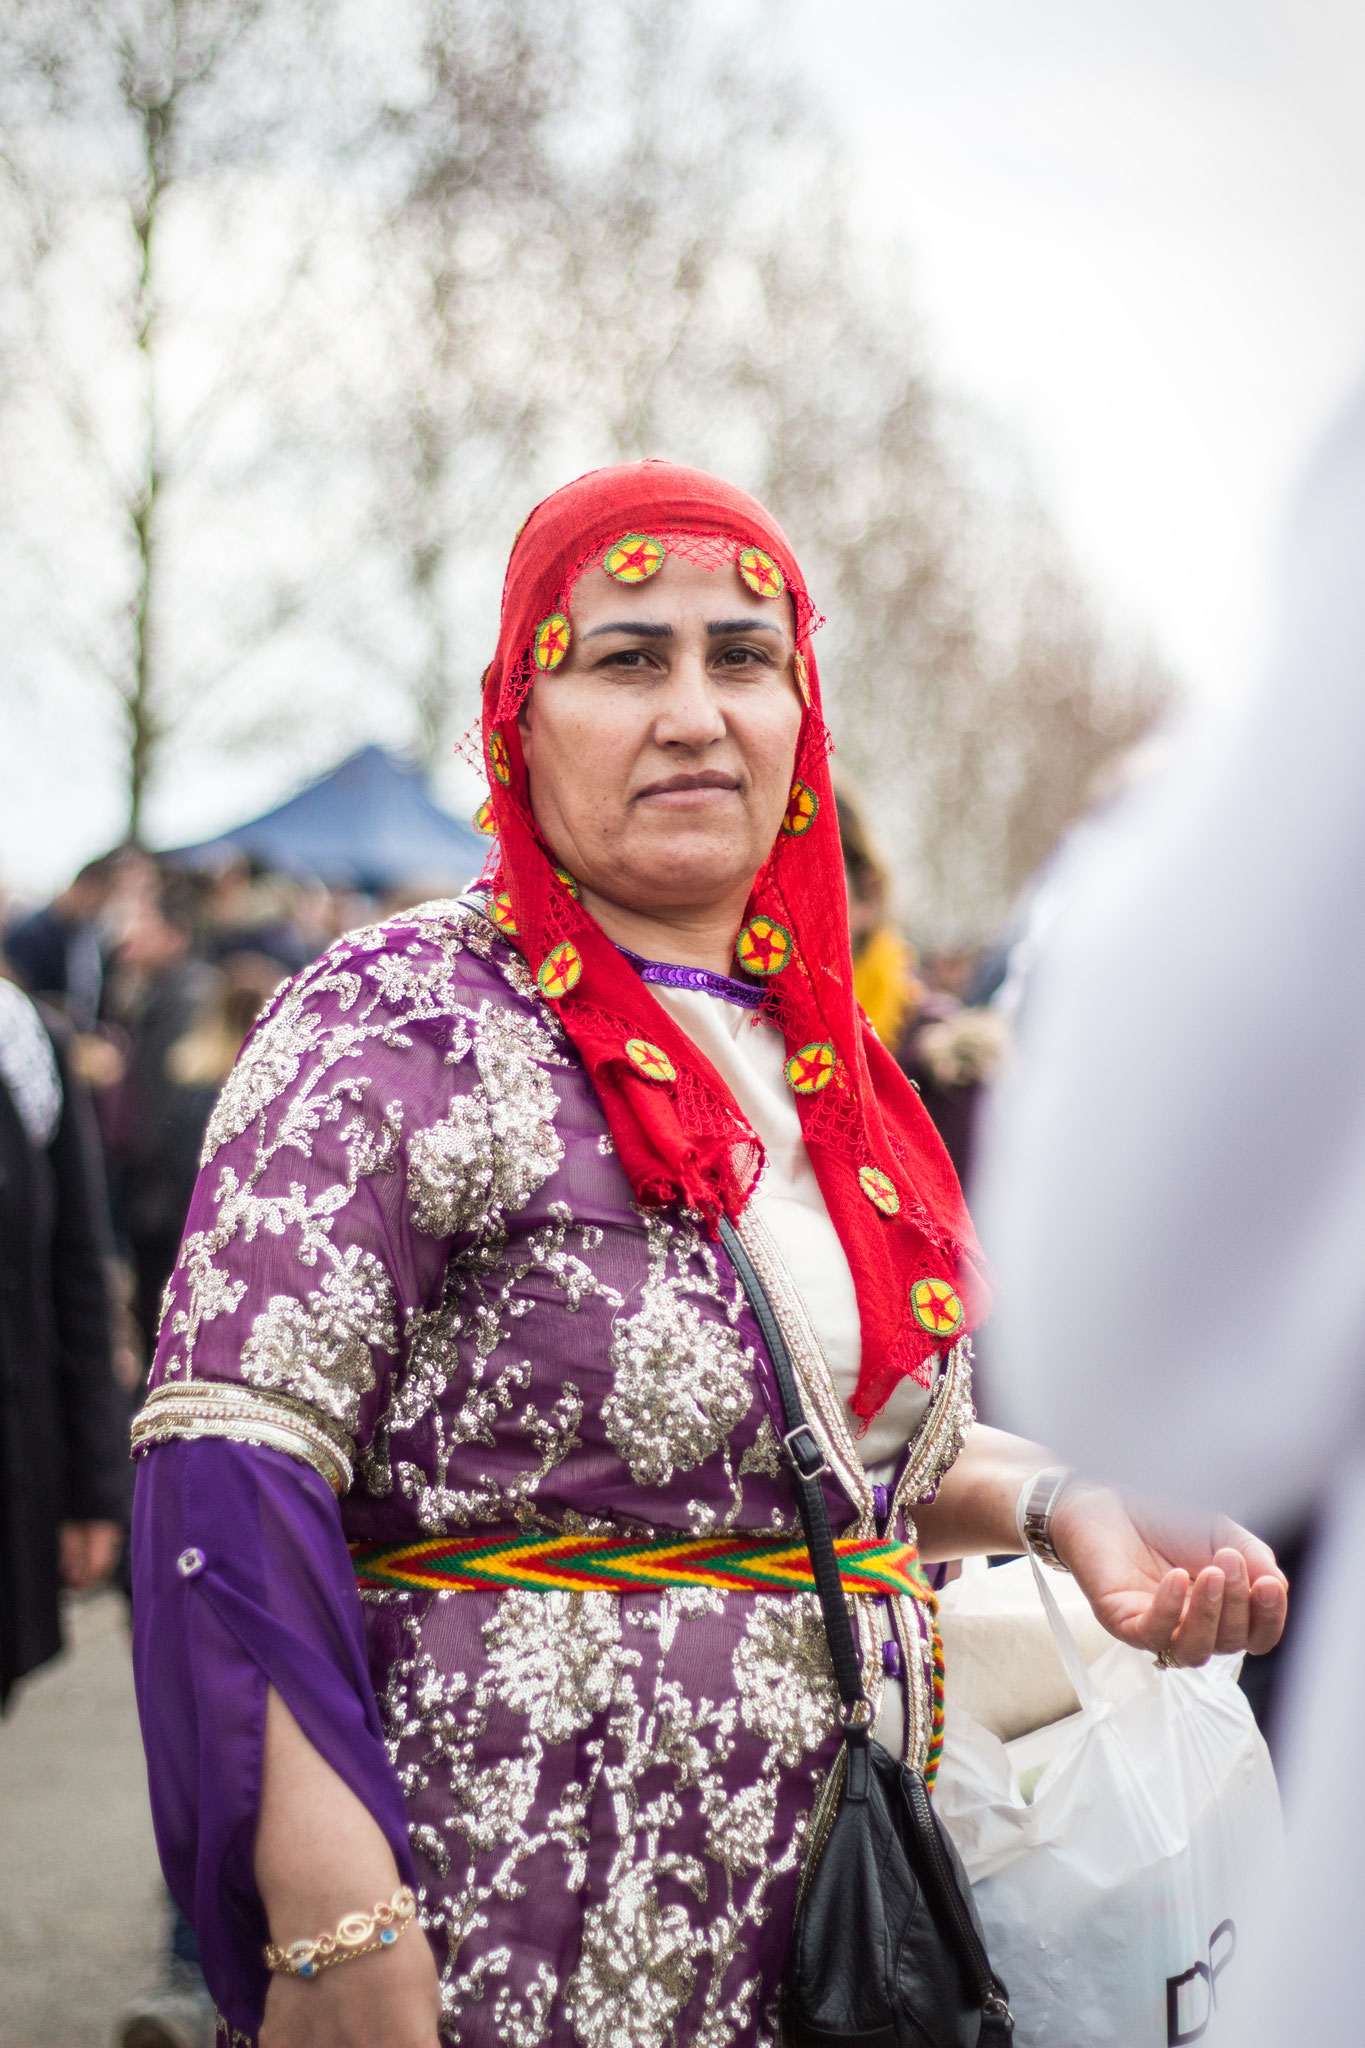 Woman in traditional Kurdish gown, celebrating the new year during Newroz in London's Finsbury Park, March 2018.